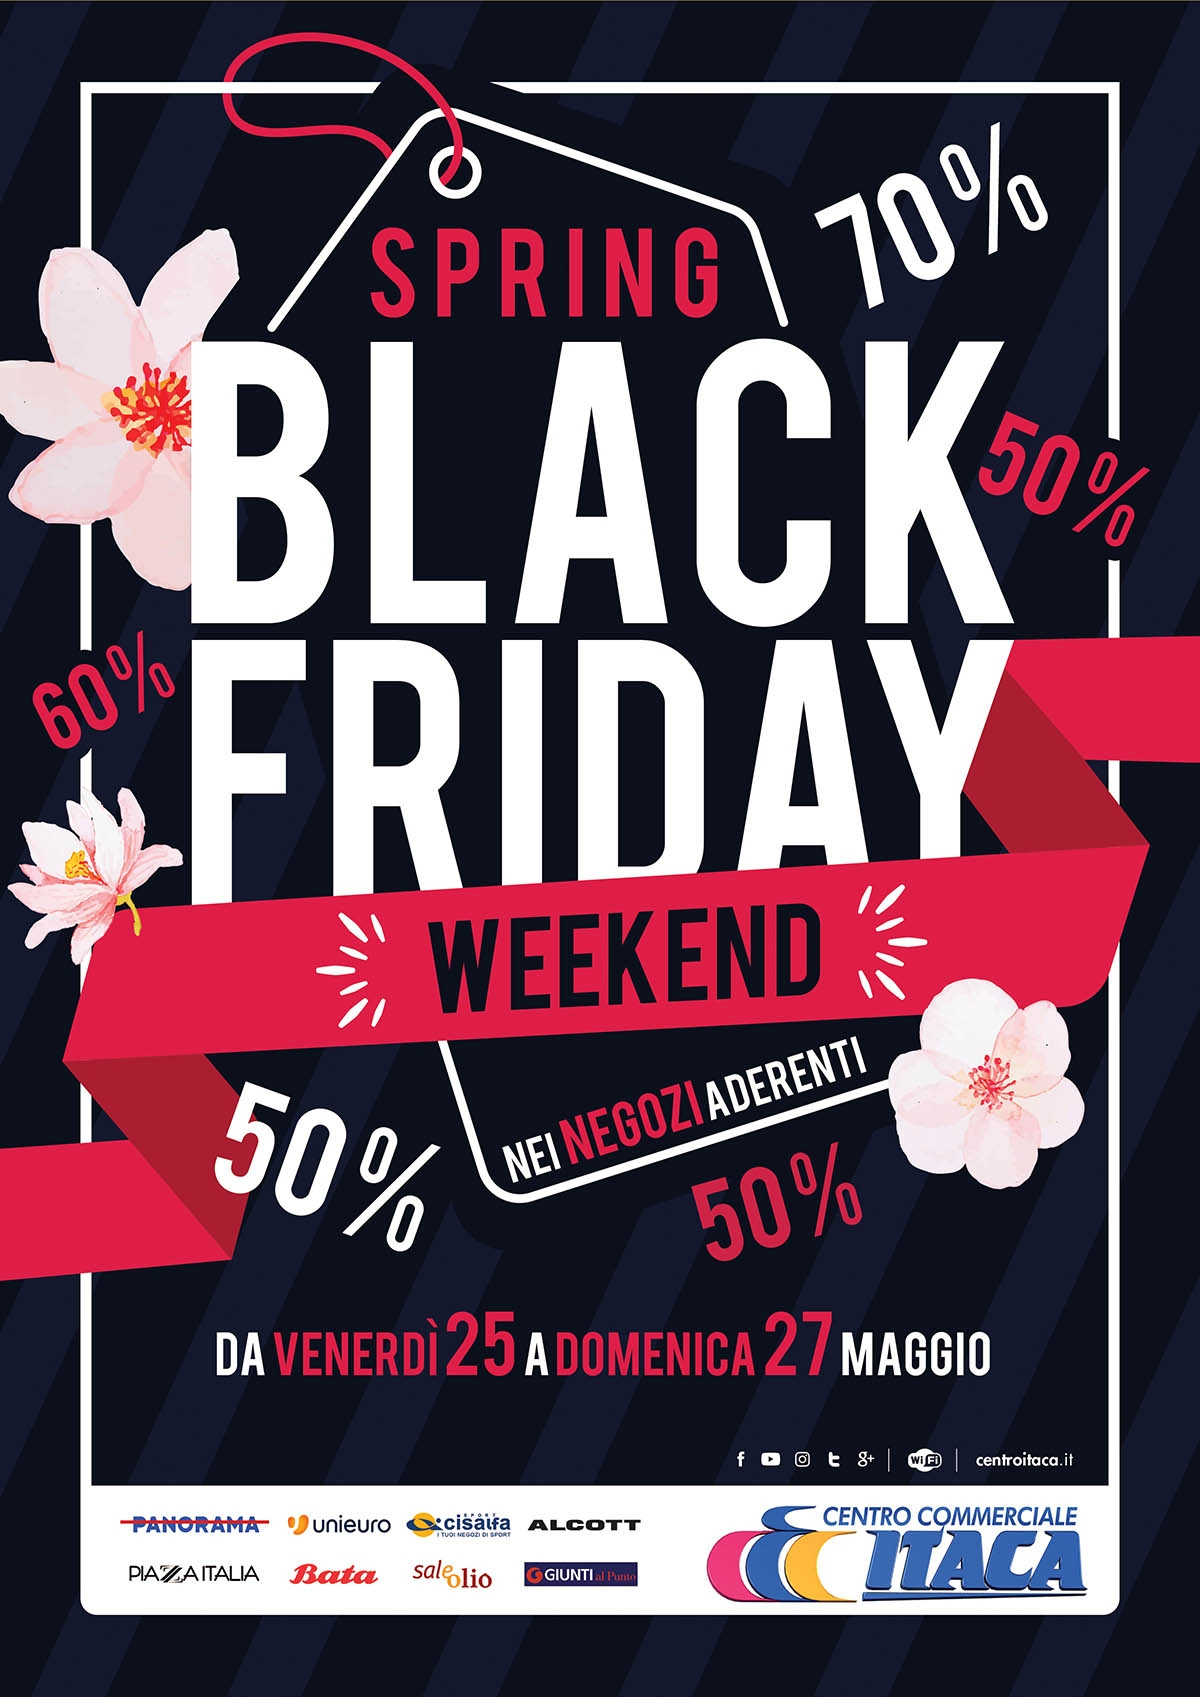 SPRING BLACK FRIDAY Weekend